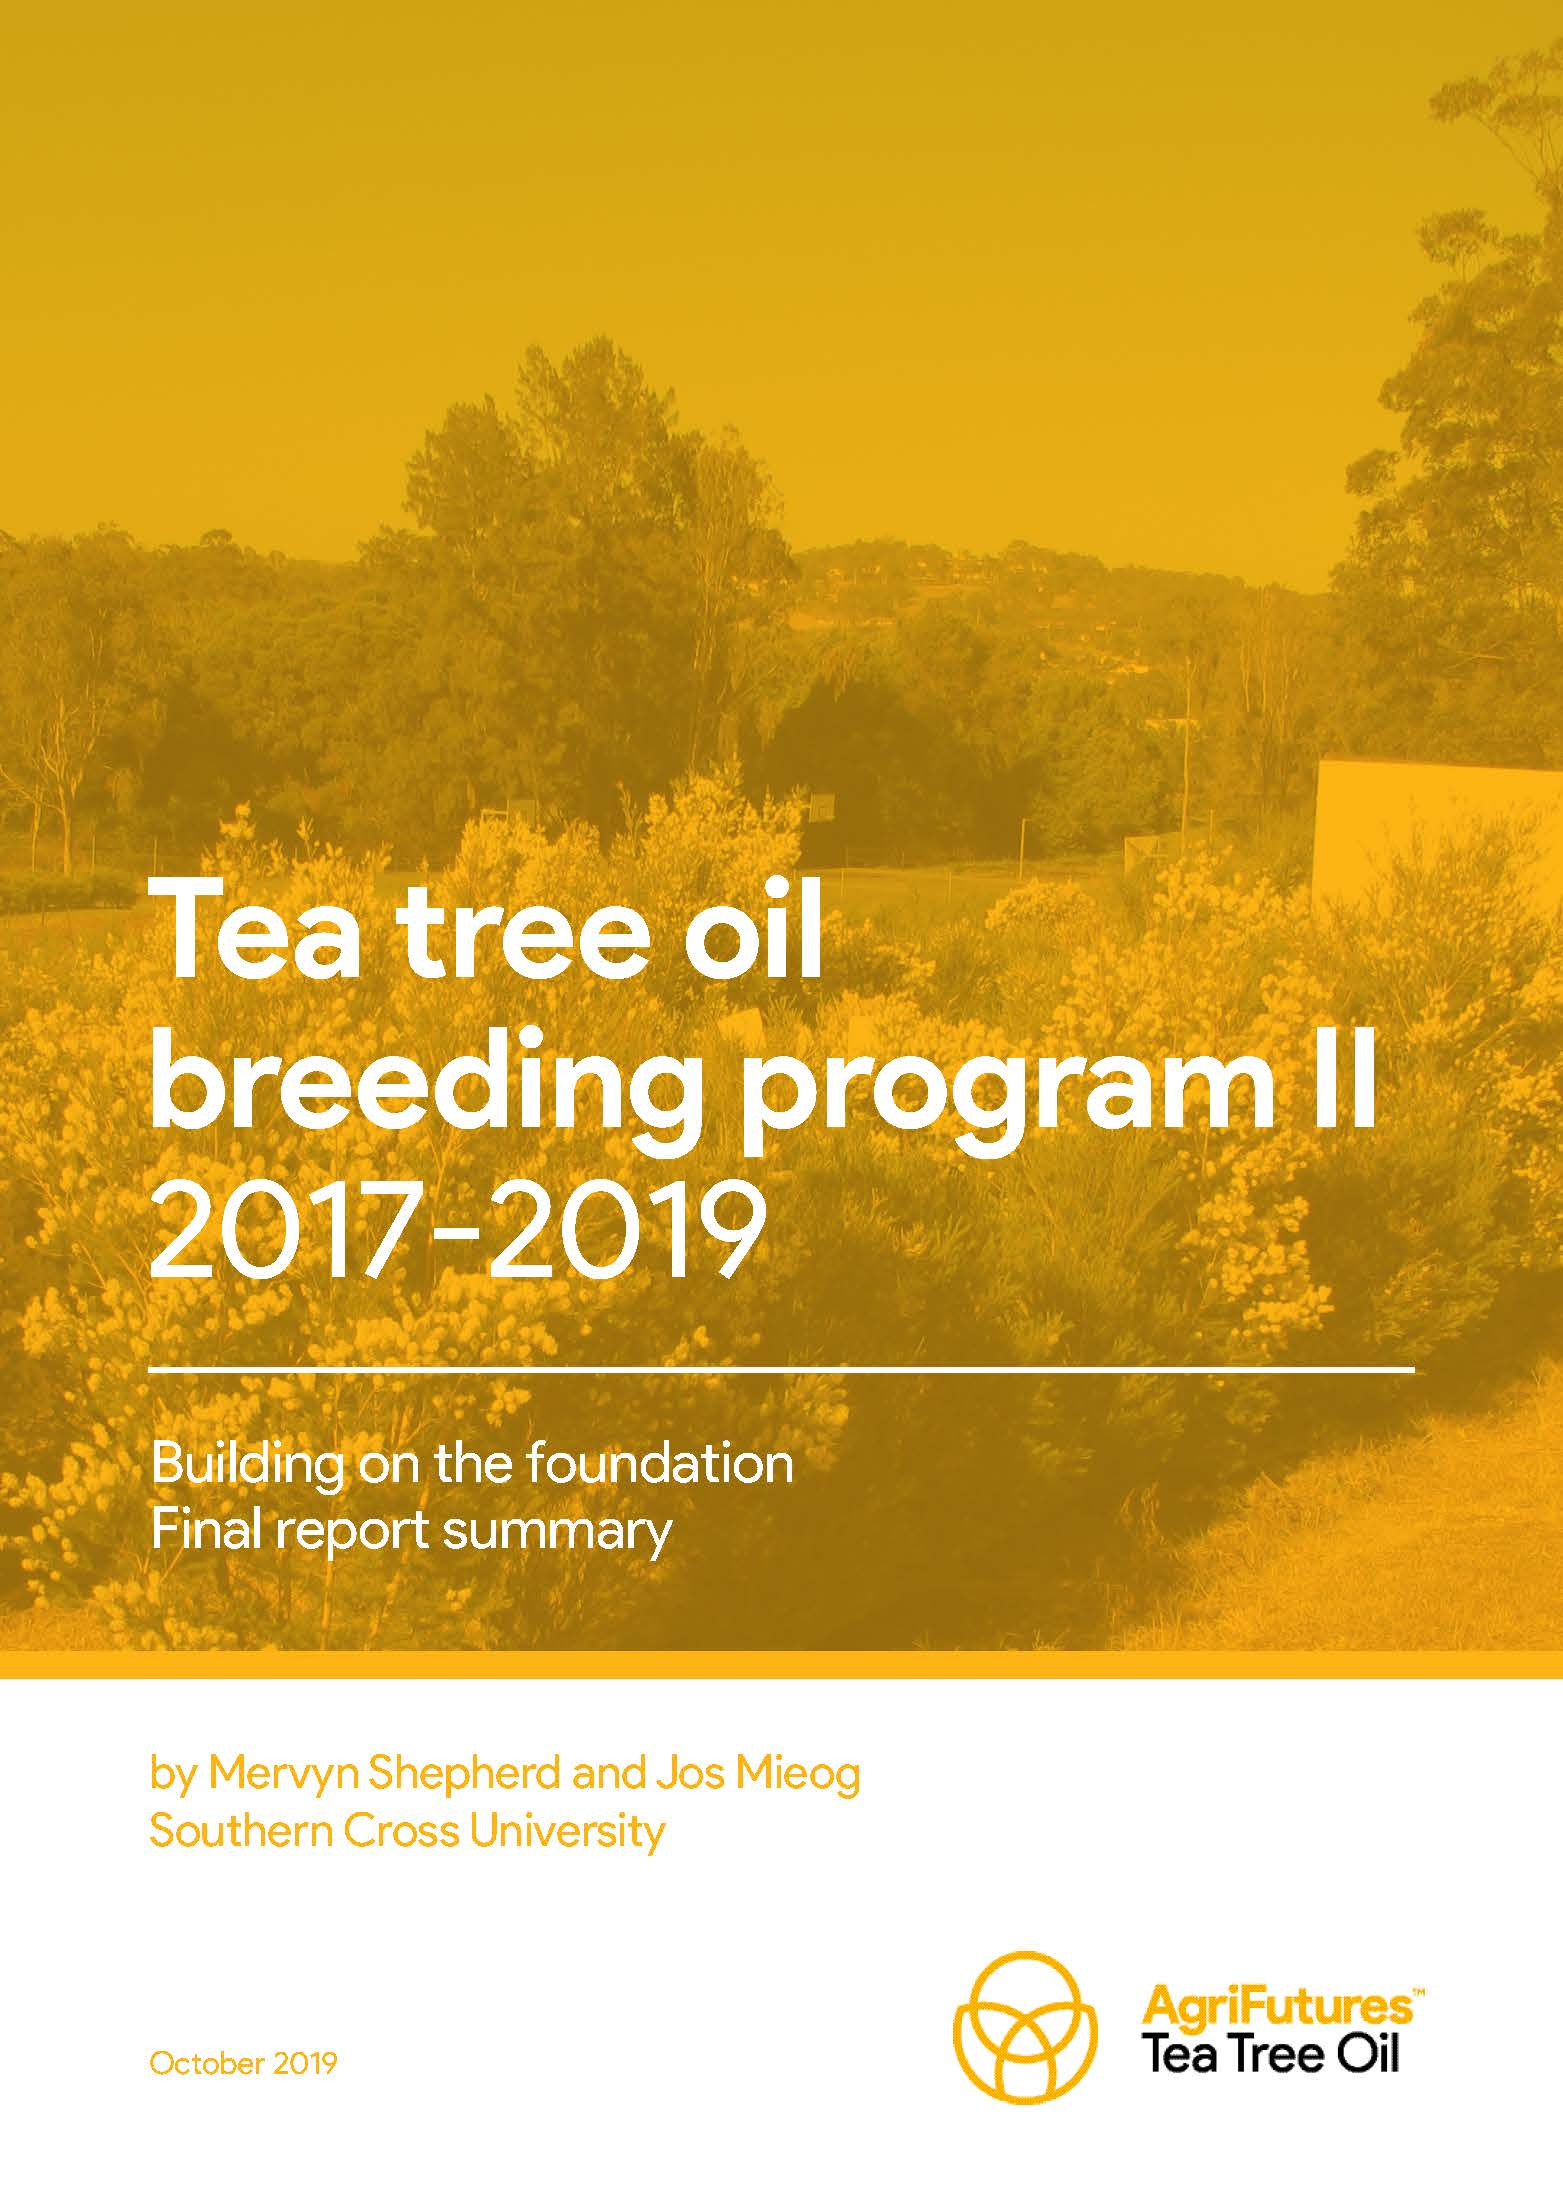 Final report summary: The Tea Tree Breeding Program II 2017-2019 - image